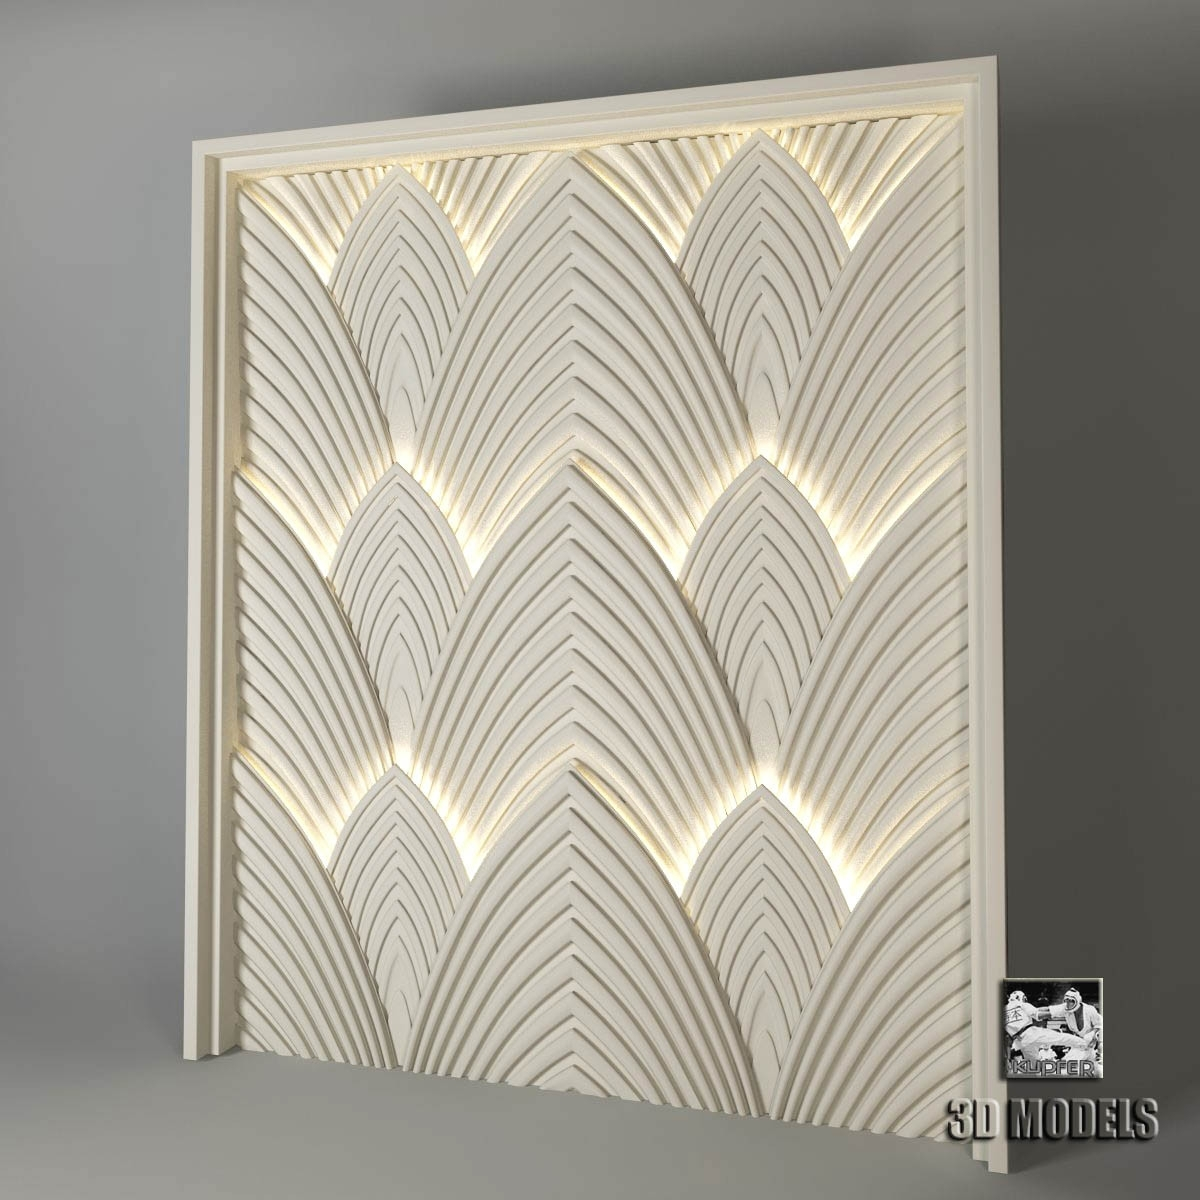 Simple Art Deco Wall Popular Art Deco Wall Art – Prix Dalle Beton Throughout Most Recently Released Art Deco Wall Art (Gallery 3 of 20)